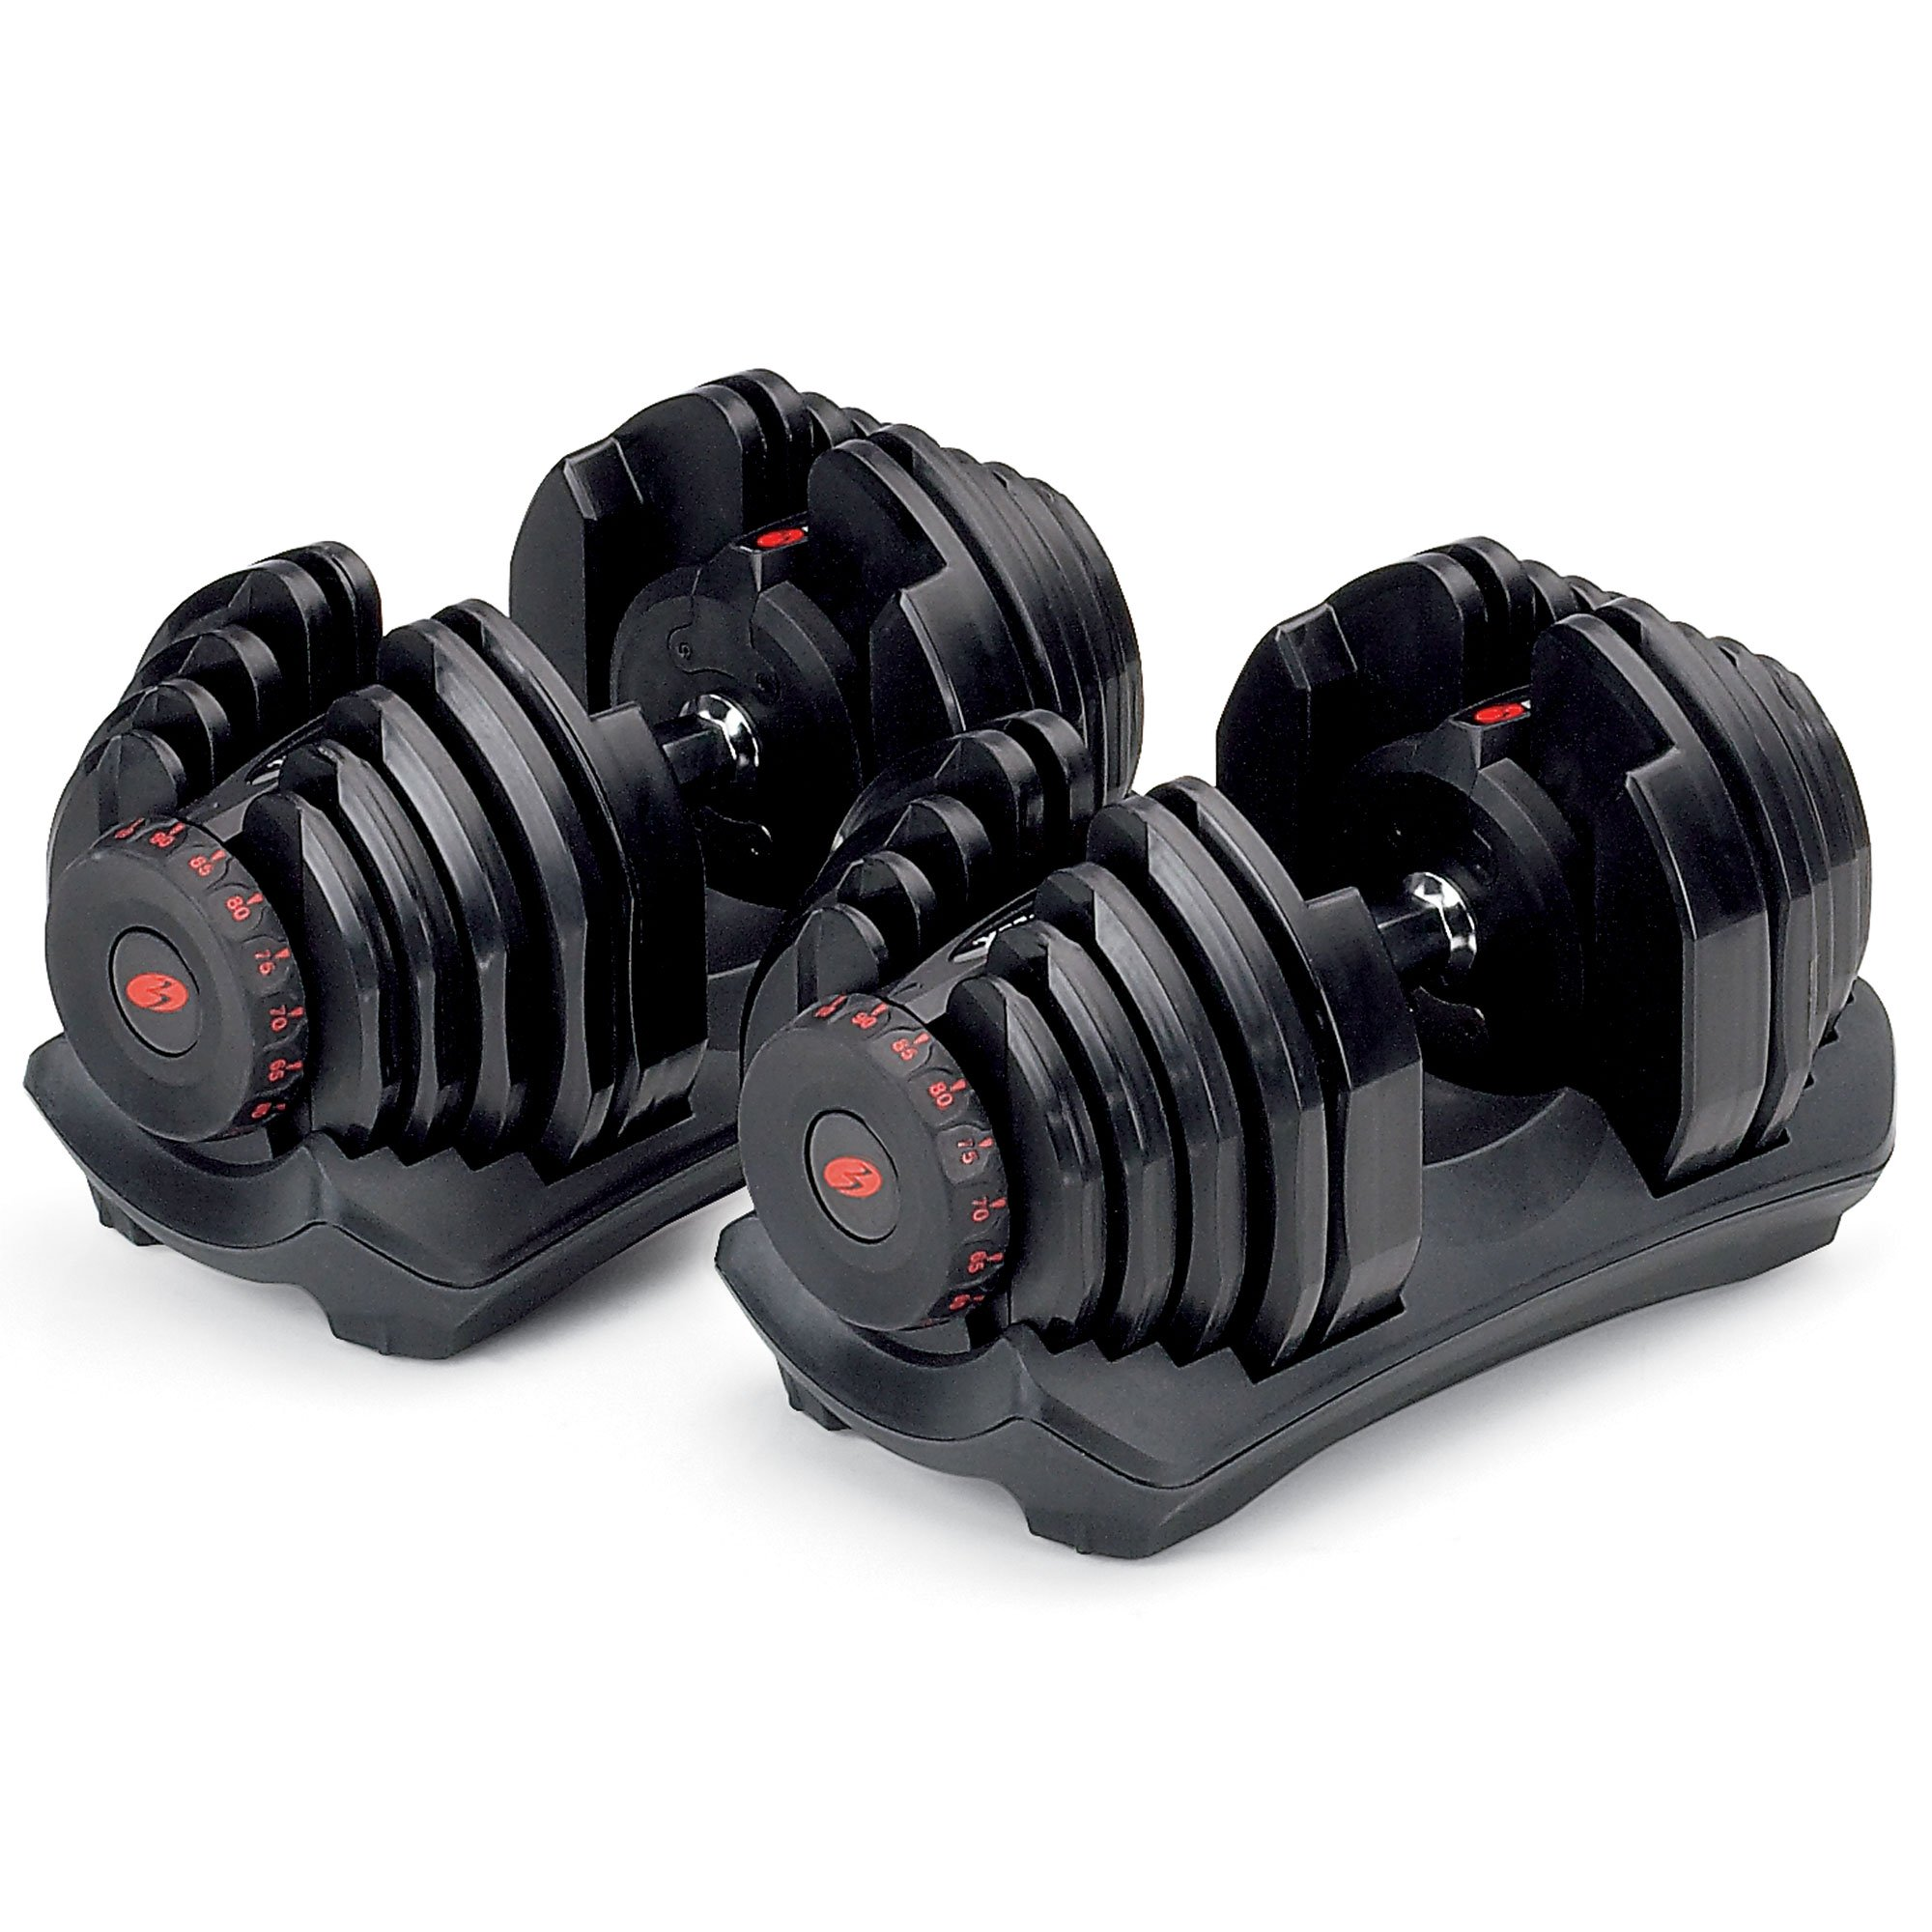 Bowflex SelectTech 1090 Workout Exercise Dumbbells w/ Adjustable Weight (2 Pack)